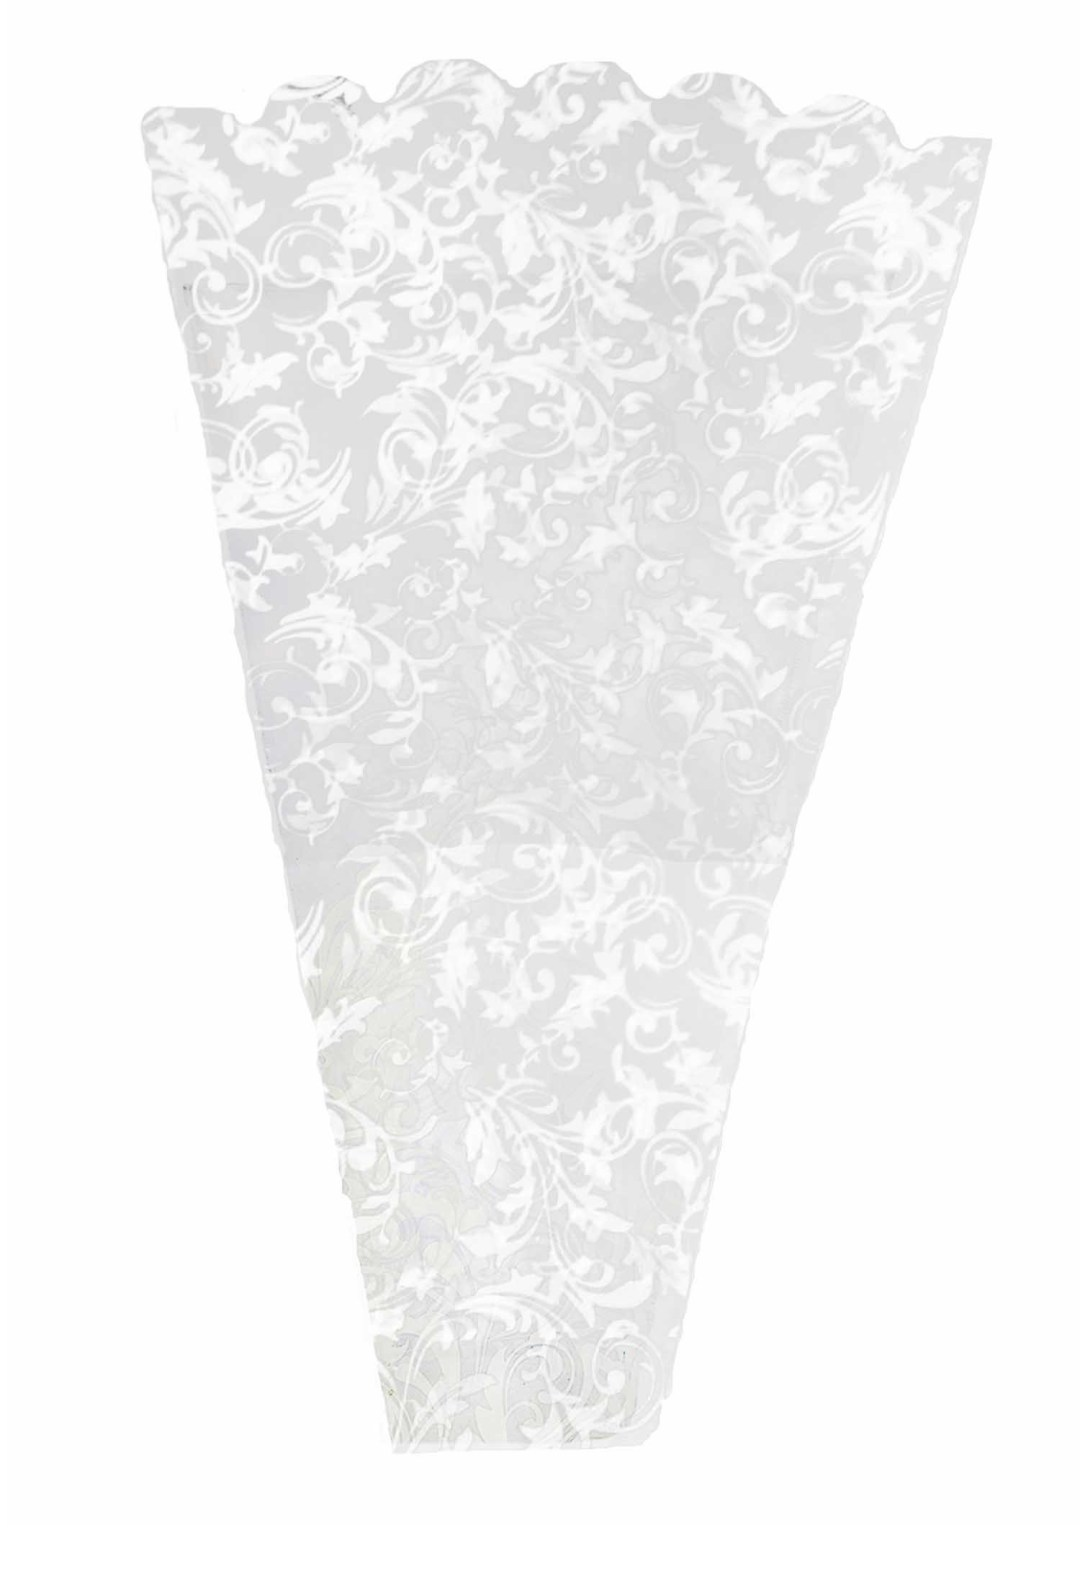 "FS5010WHT - Poly Floral Sleeve With White Pattern 19"" Tall X 13.5"" Wide x 4"" Bottom Pack of 50 FS5010WHT"